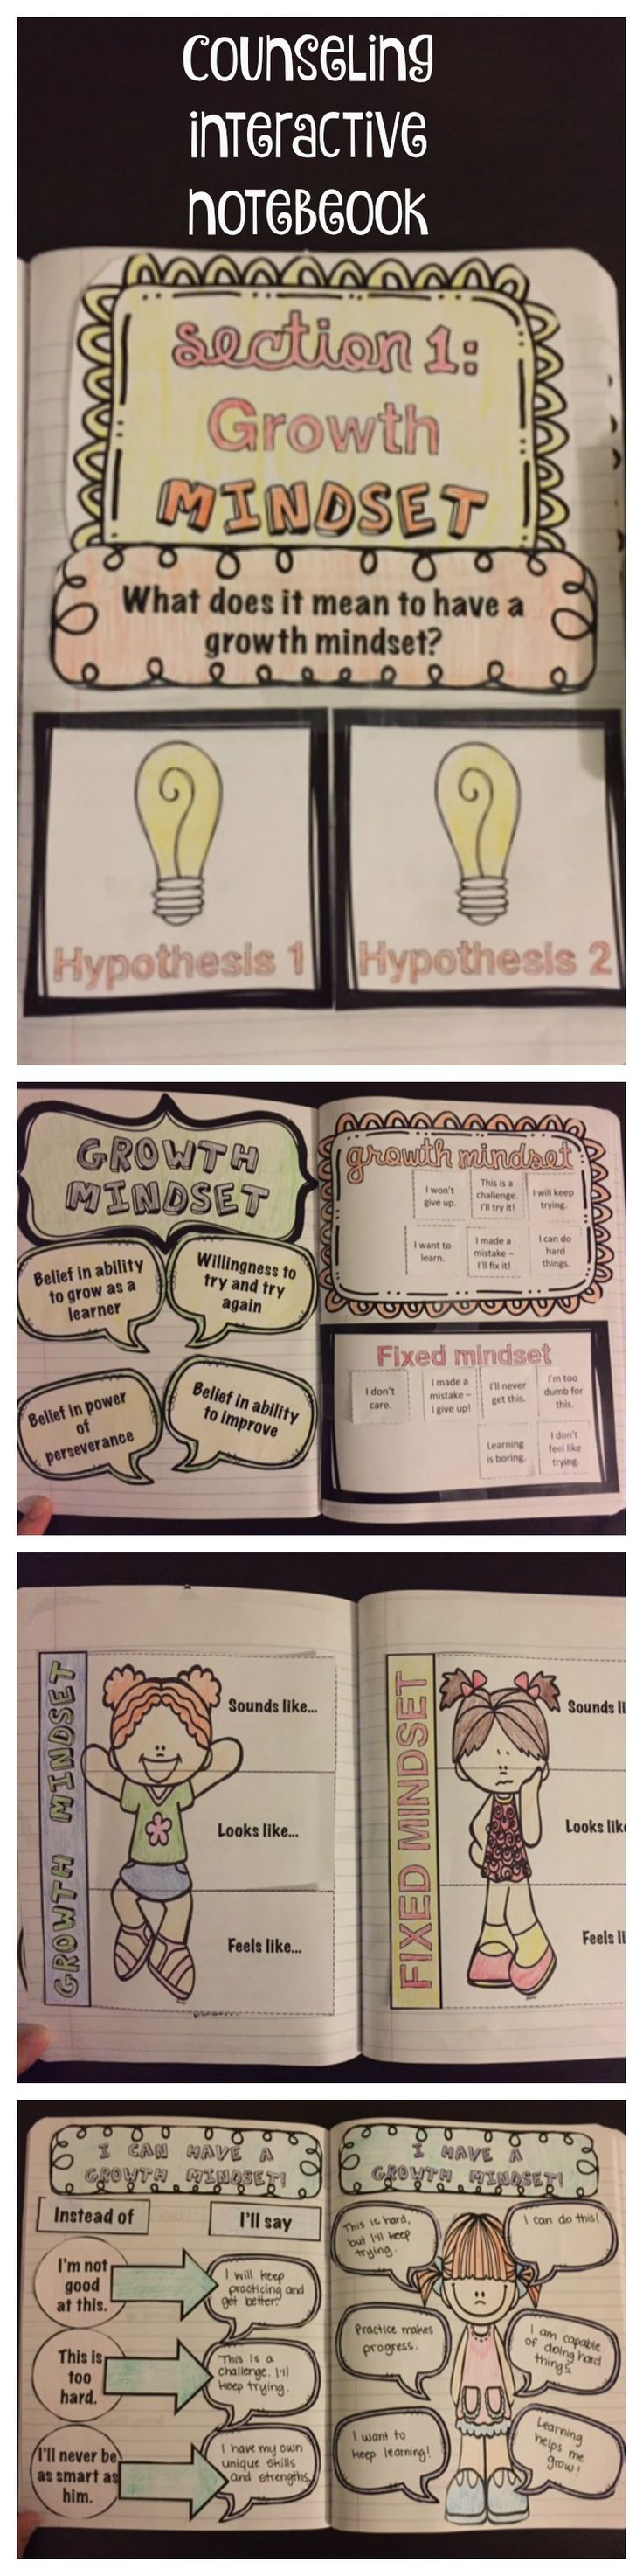 Elementary School Counseling Interactive Notebook, Section 1: Growth Mindset from The Counselor's Corner